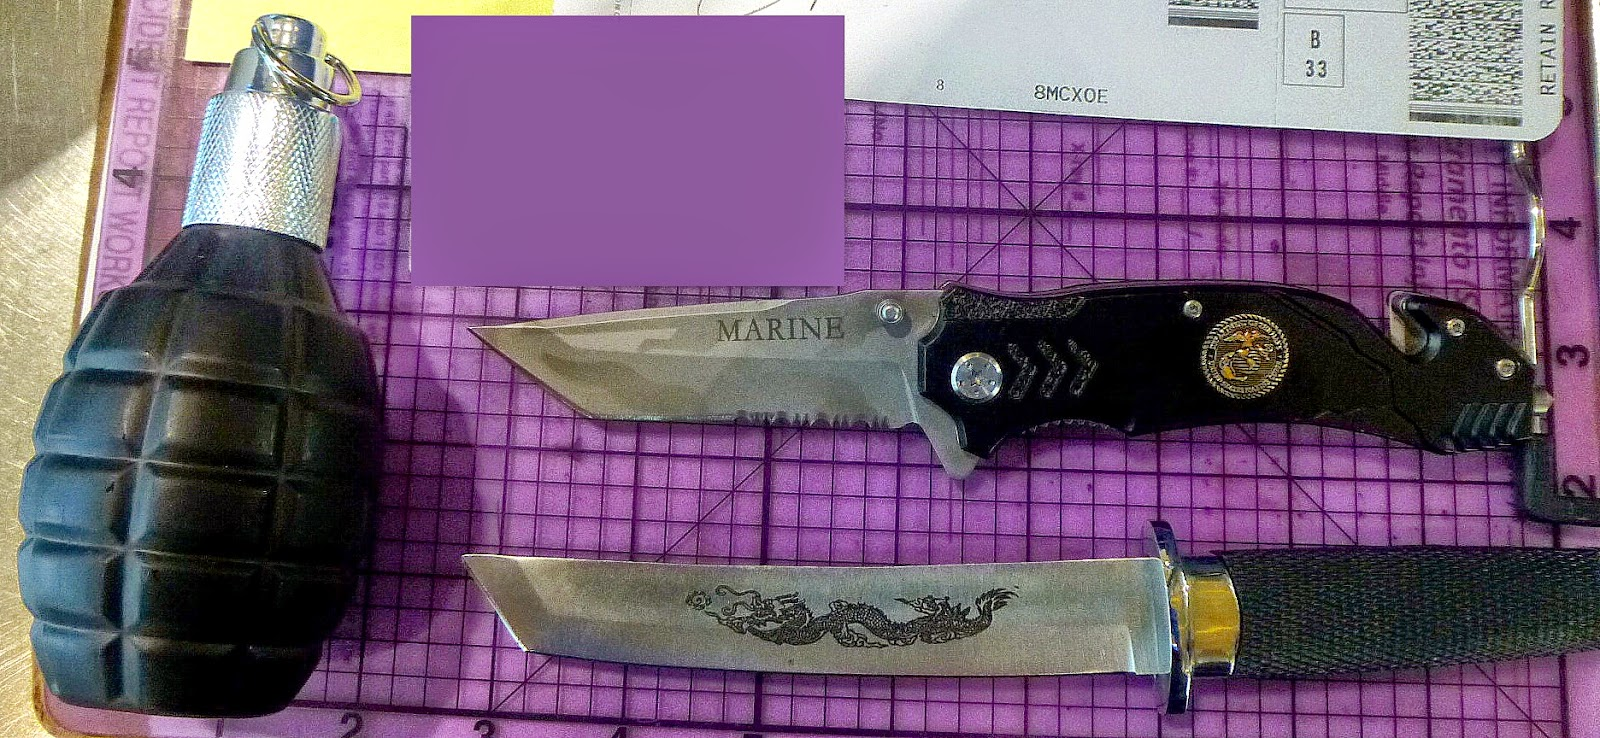 Knives & grenade-shaped cologne discovered in passenger's bag at SMF